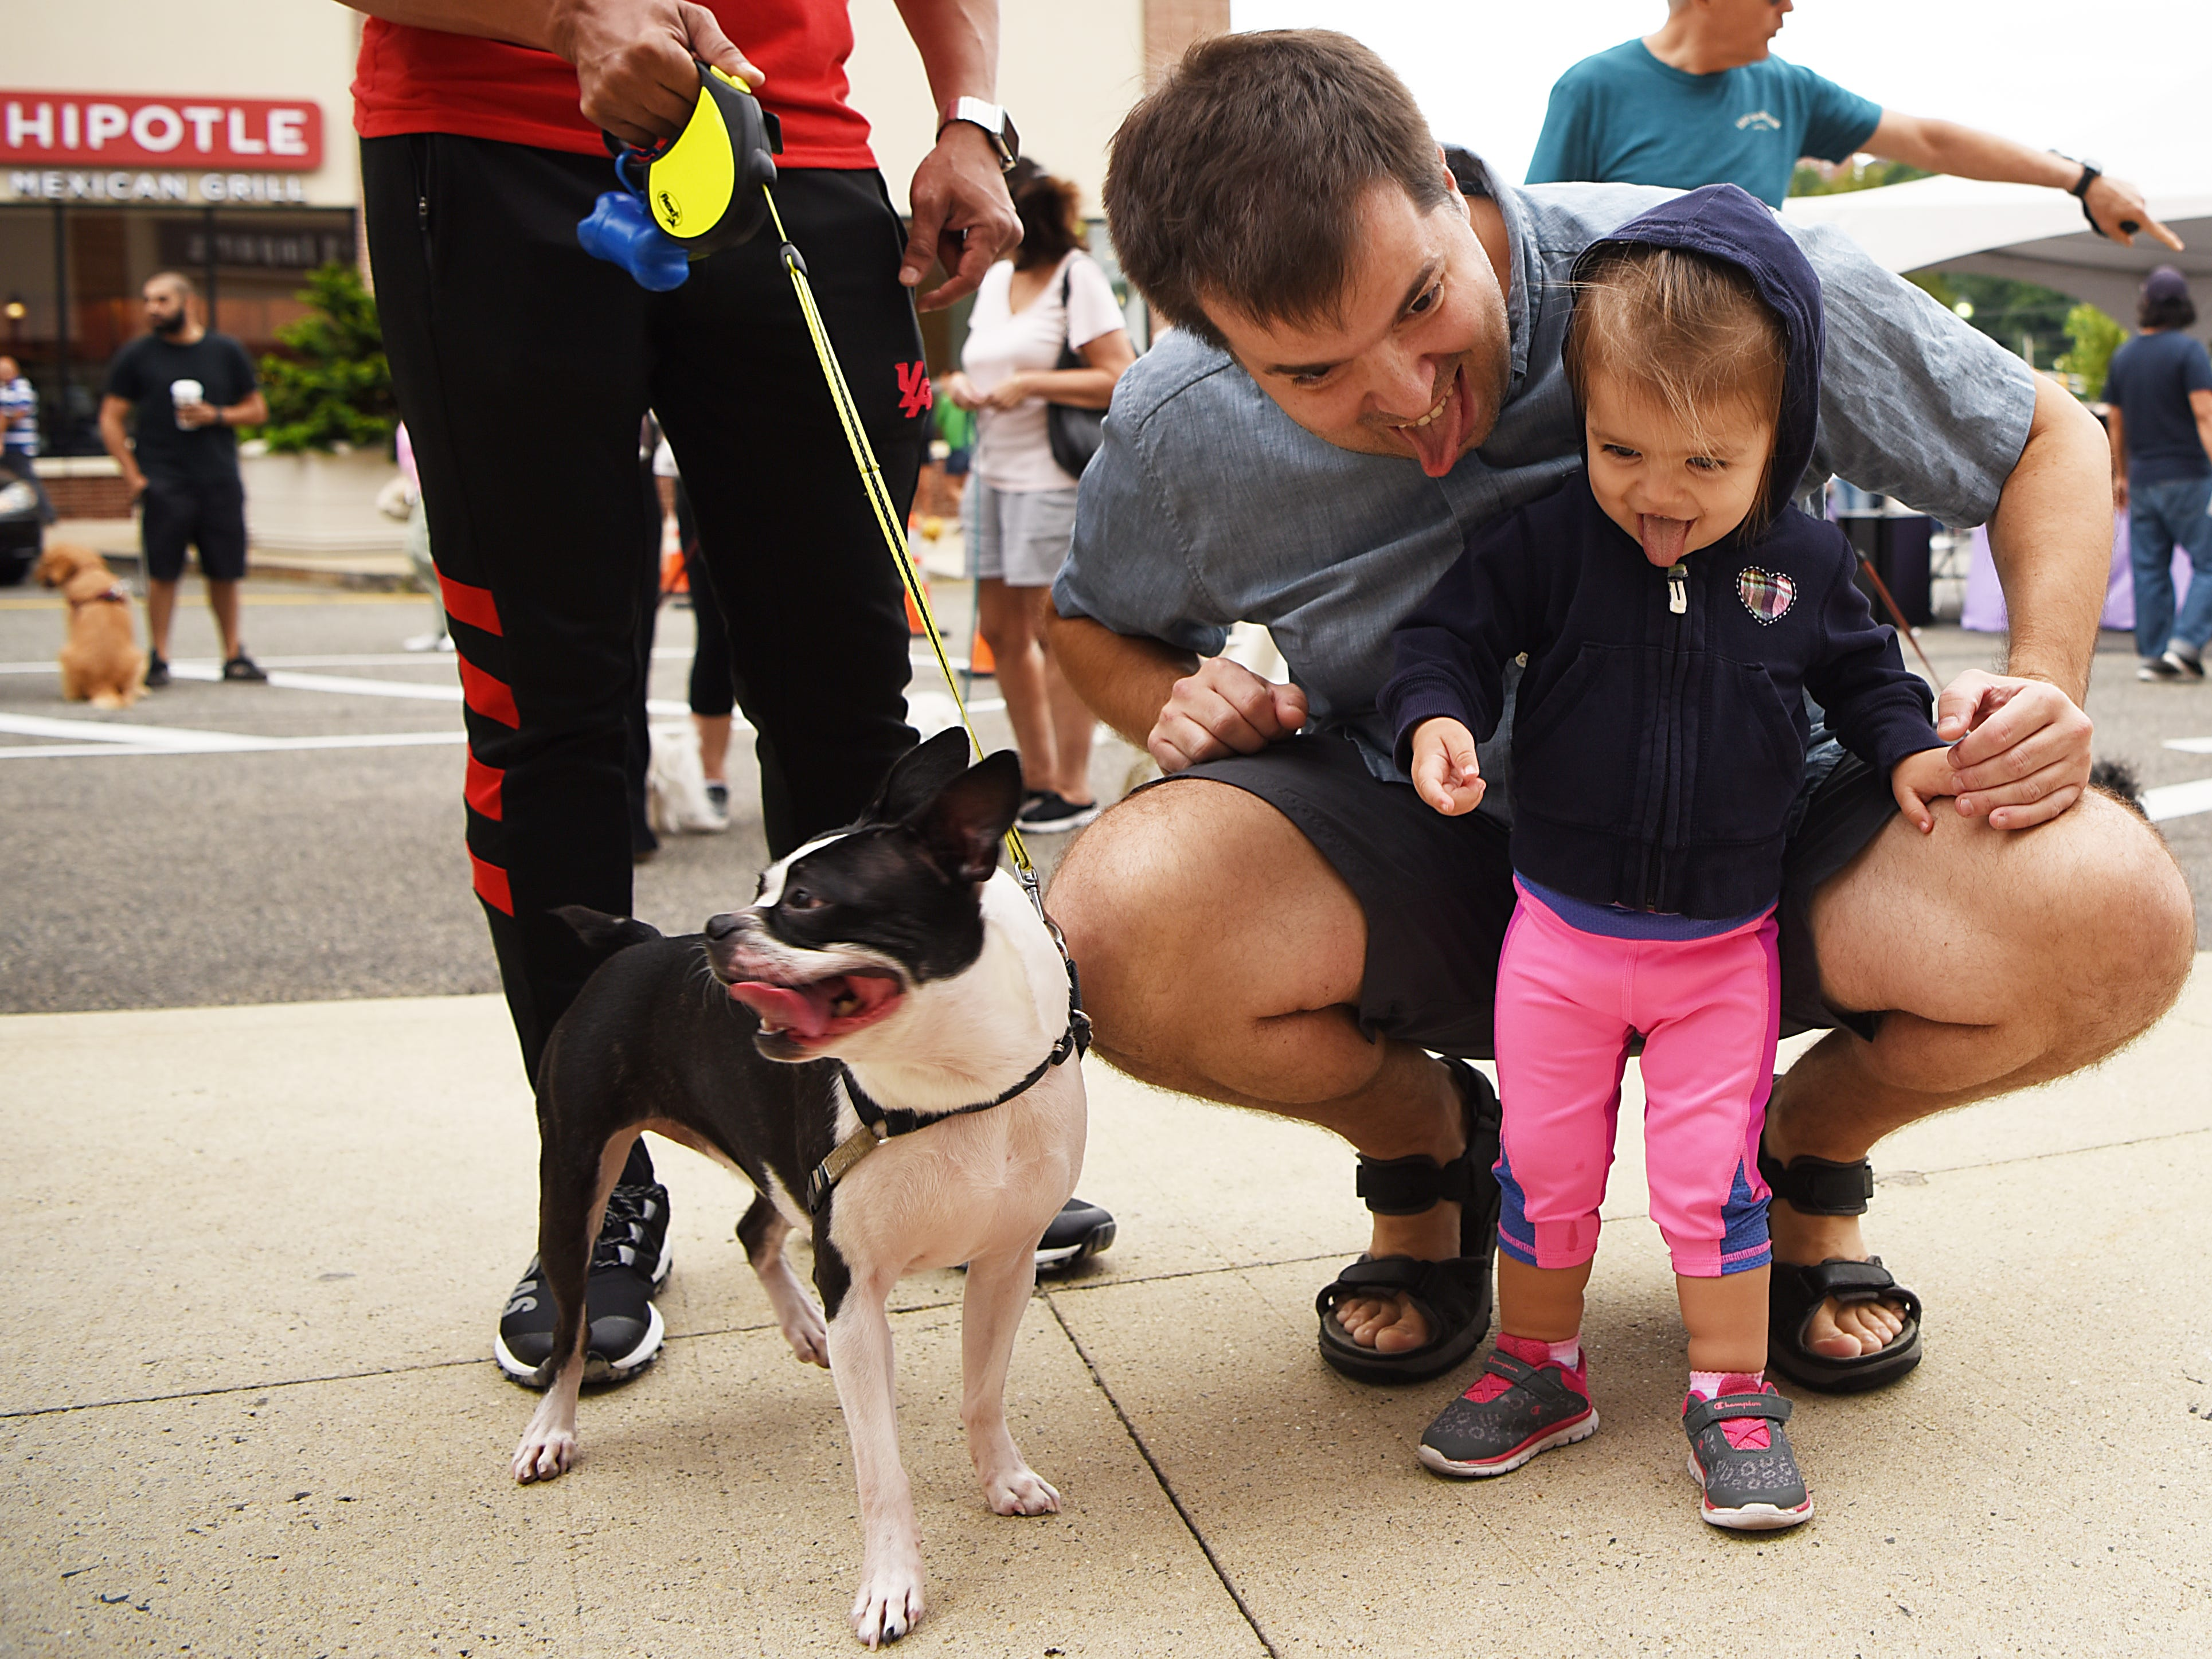 (From left) Bella - a four year old Boston Terrier, Tom Zieba and Mila Zieba - 20 months old, all stick their tongues out.  Woofstock 2018, a benefit for Bergen County animal rescue organizations, at City Place in Edgewater on Saturday September 8, 2018.